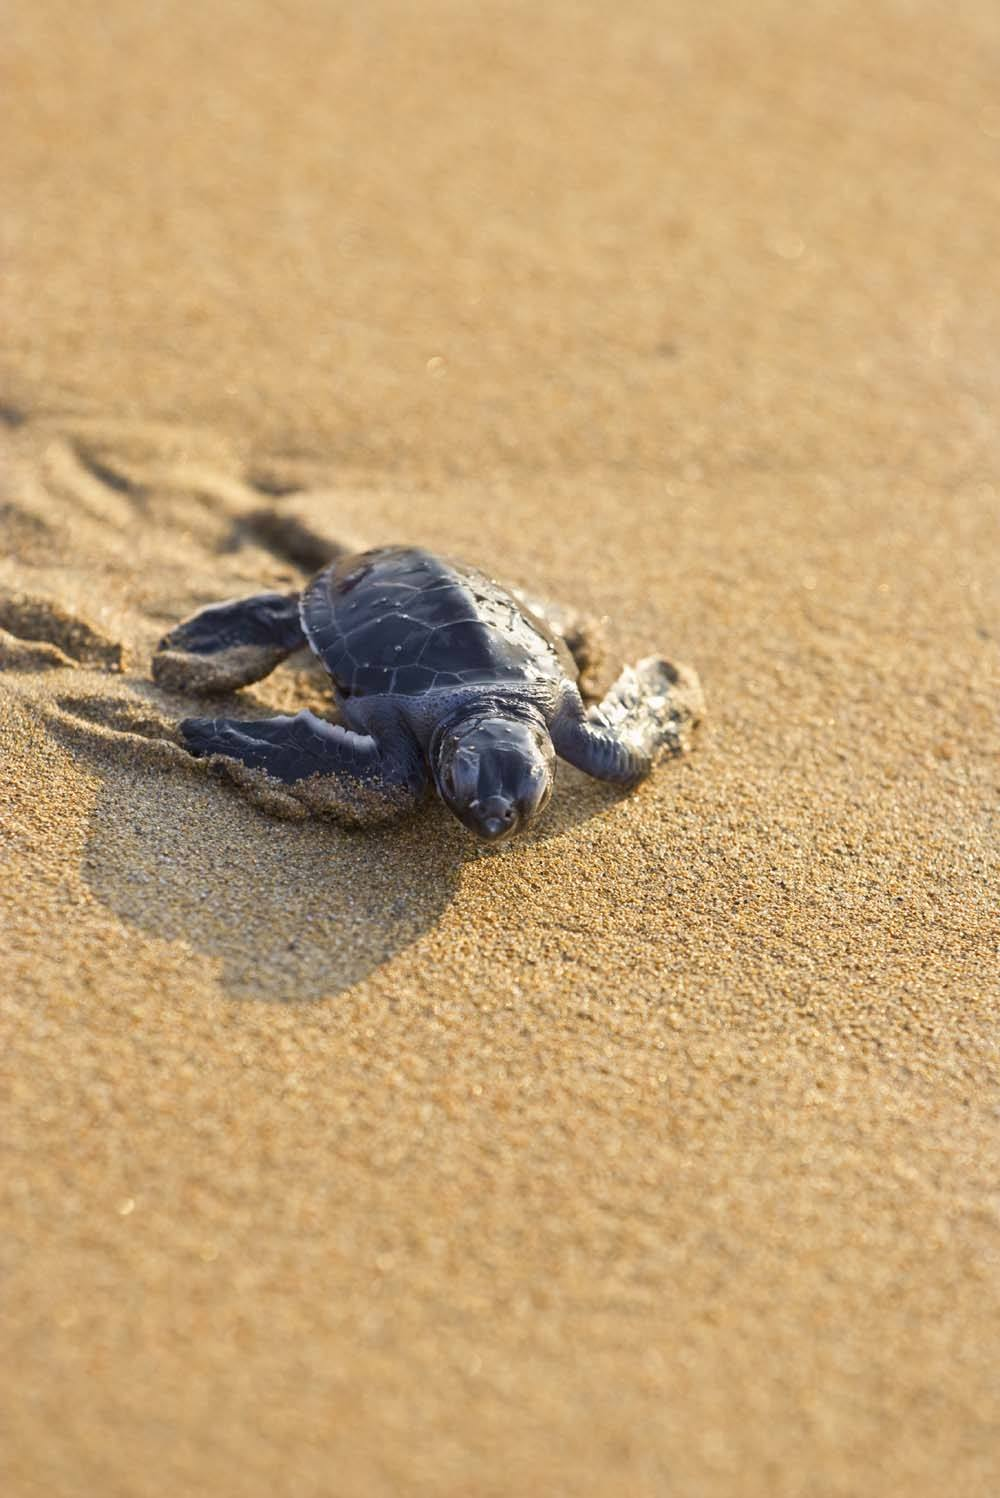 A baby turtle heads for the sea